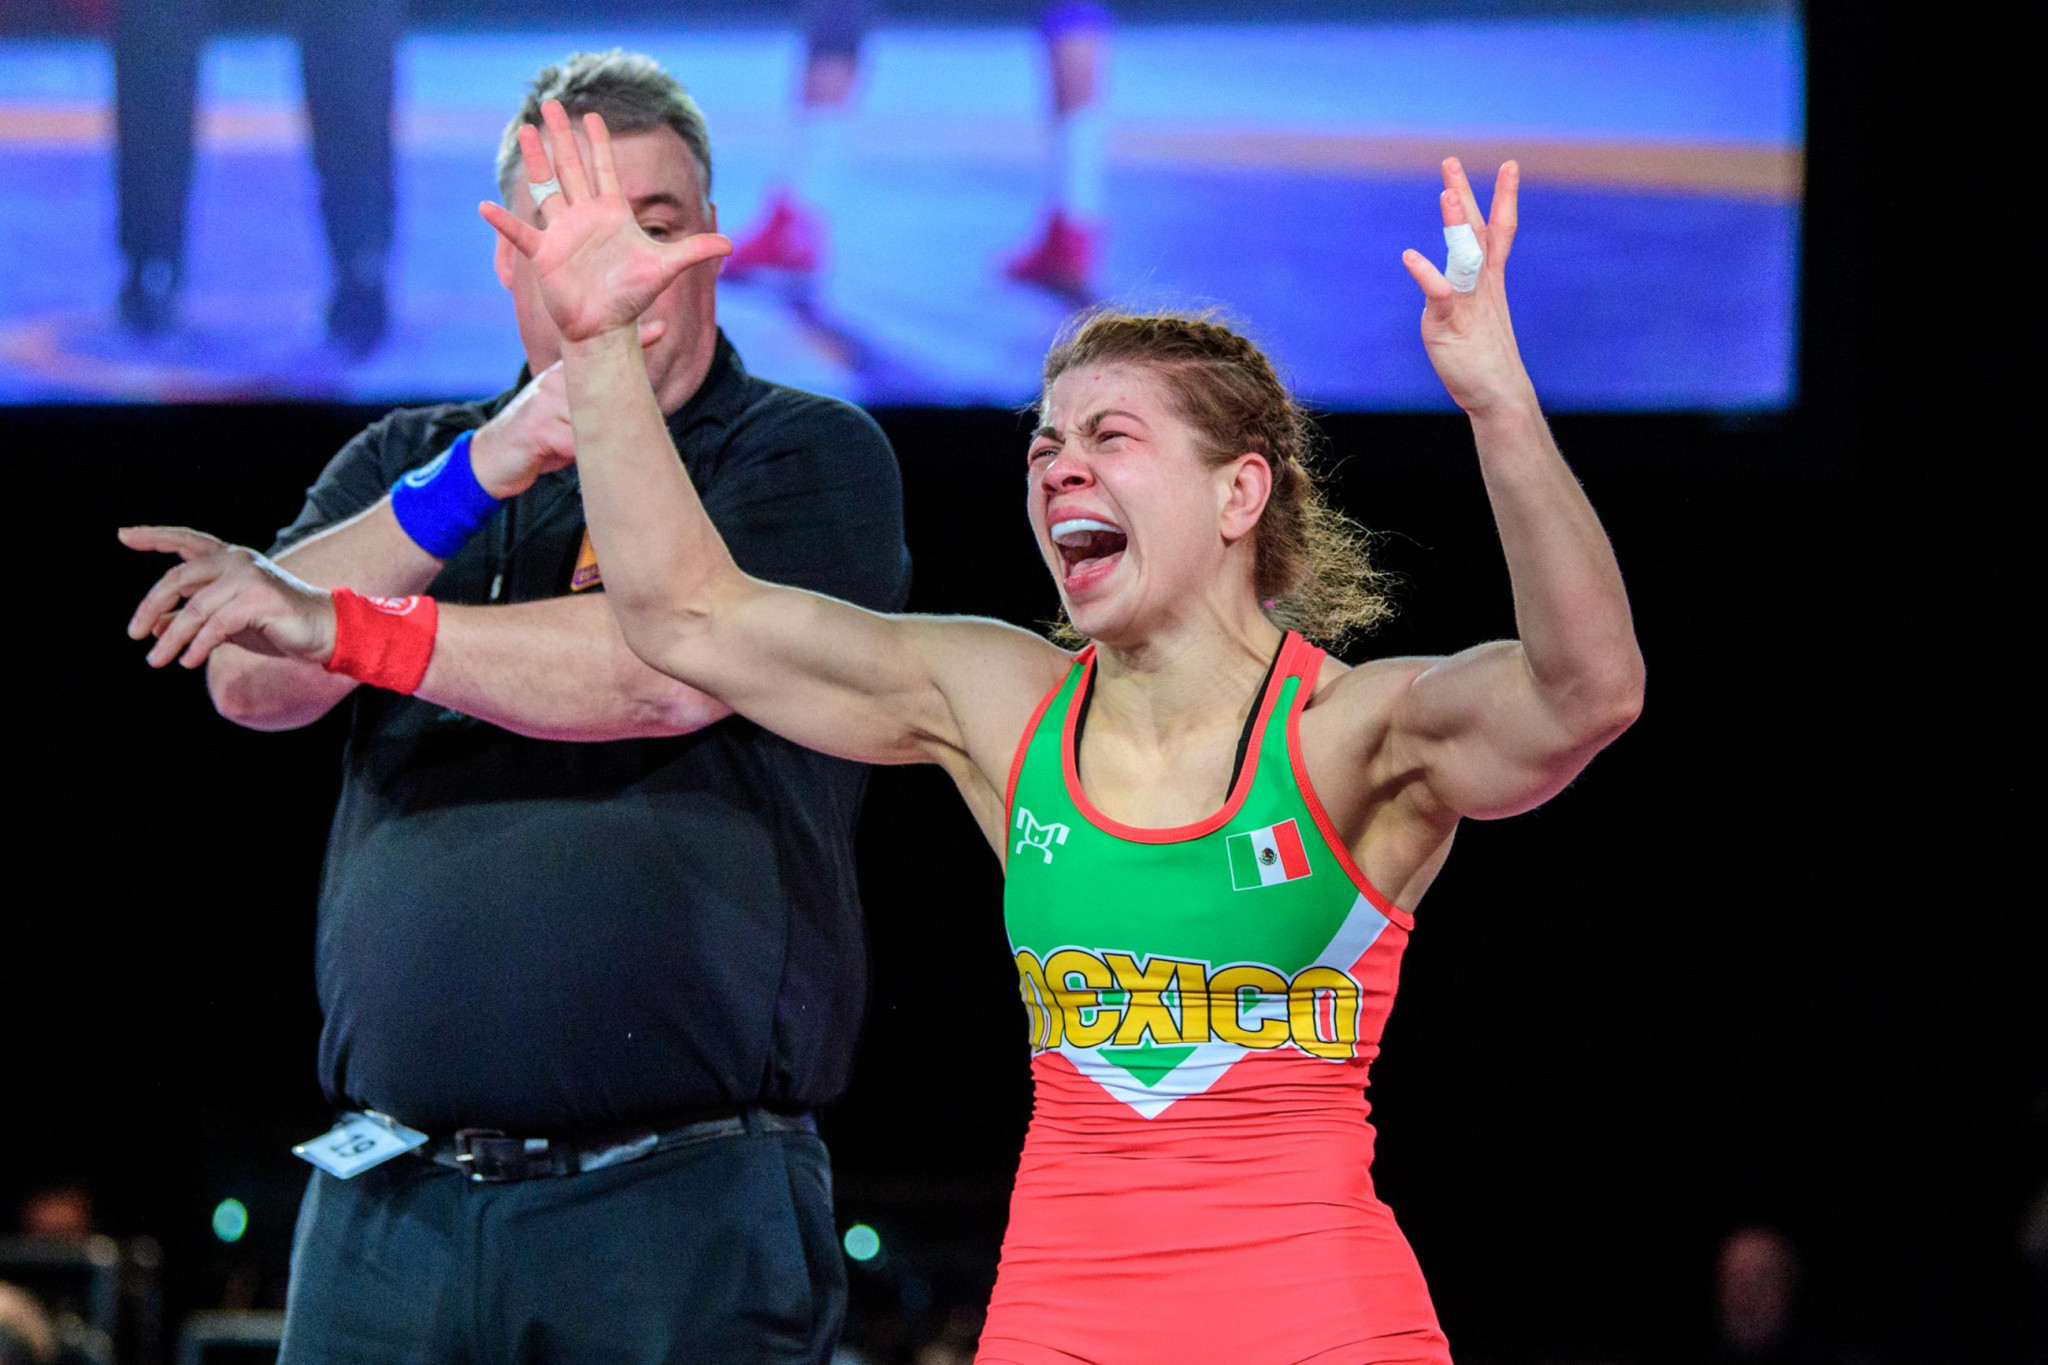 Valencia Escoto becomes first female Mexican wrestler to secure Olympic qualification